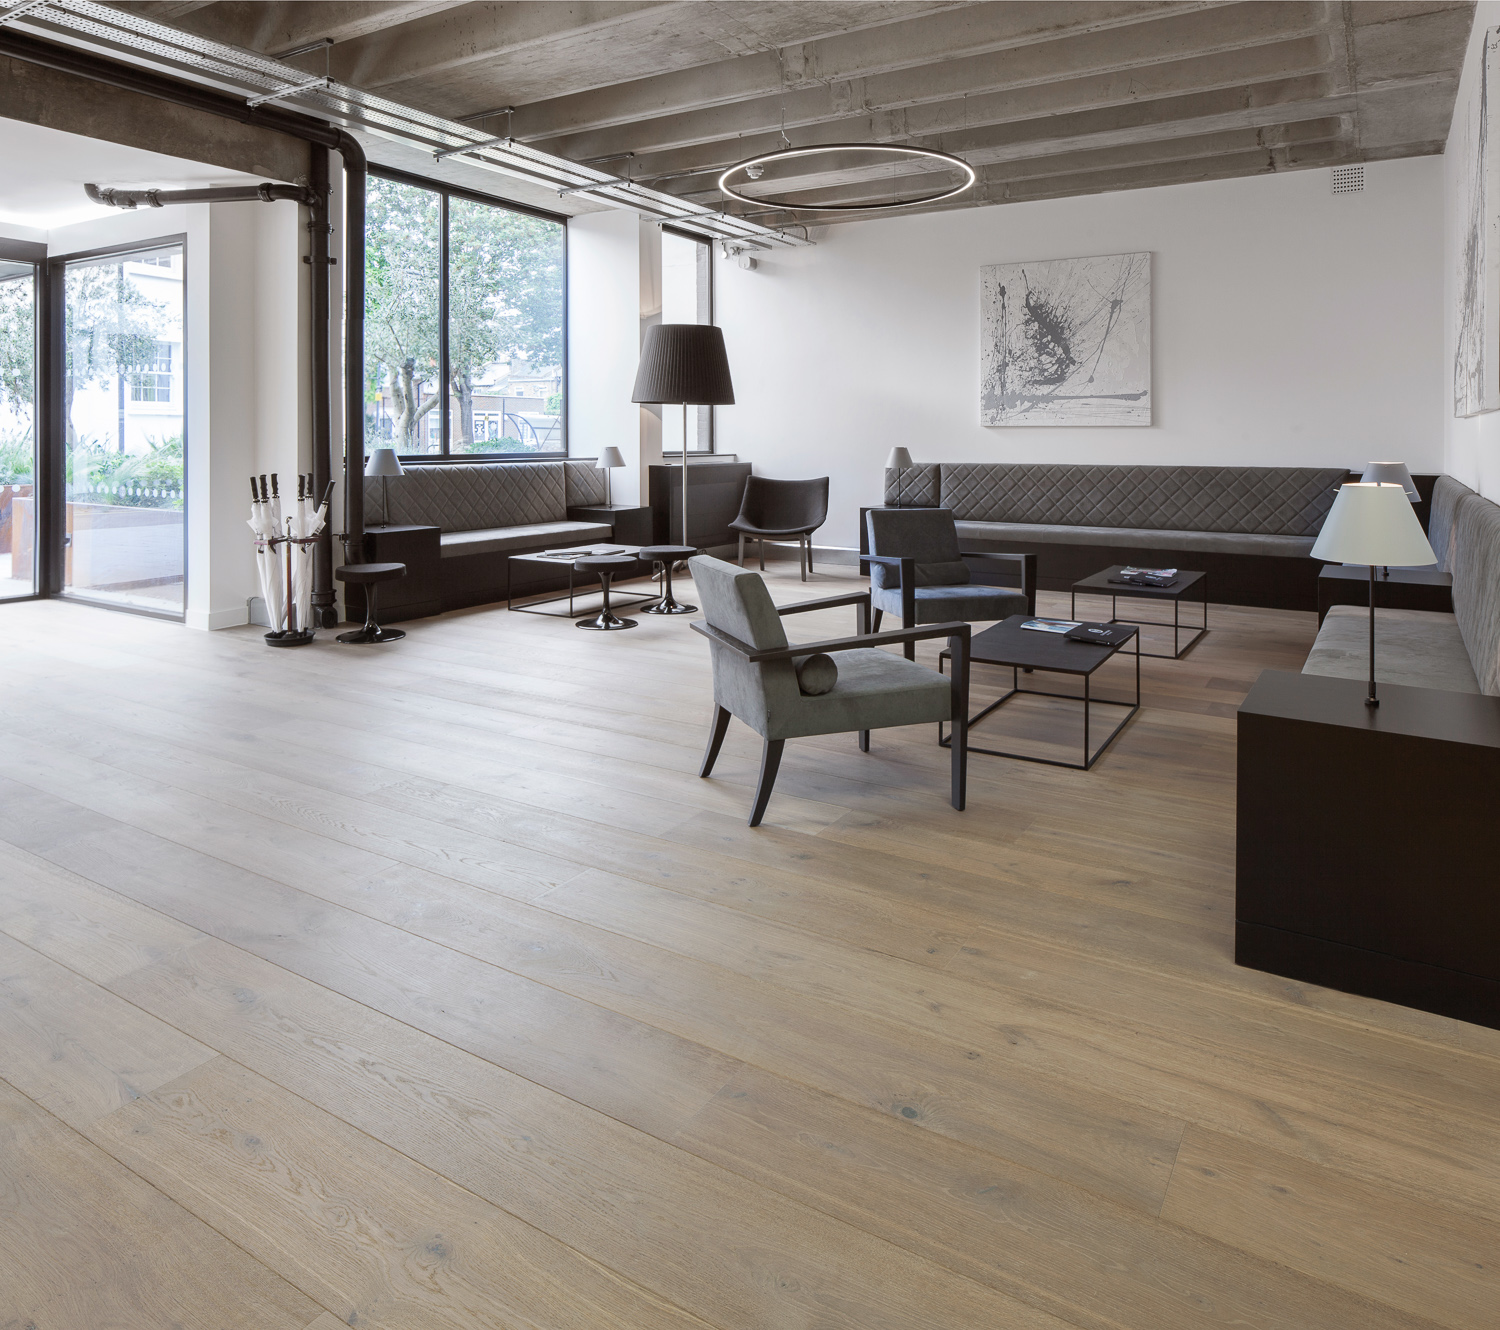 Blog Archives The New Reclaimed Flooring Companythe Swag Lamp Wiring Kit From Lee Valley Tools And Voila Cool Lampand Our Harvested Oak Clockwork Offices London